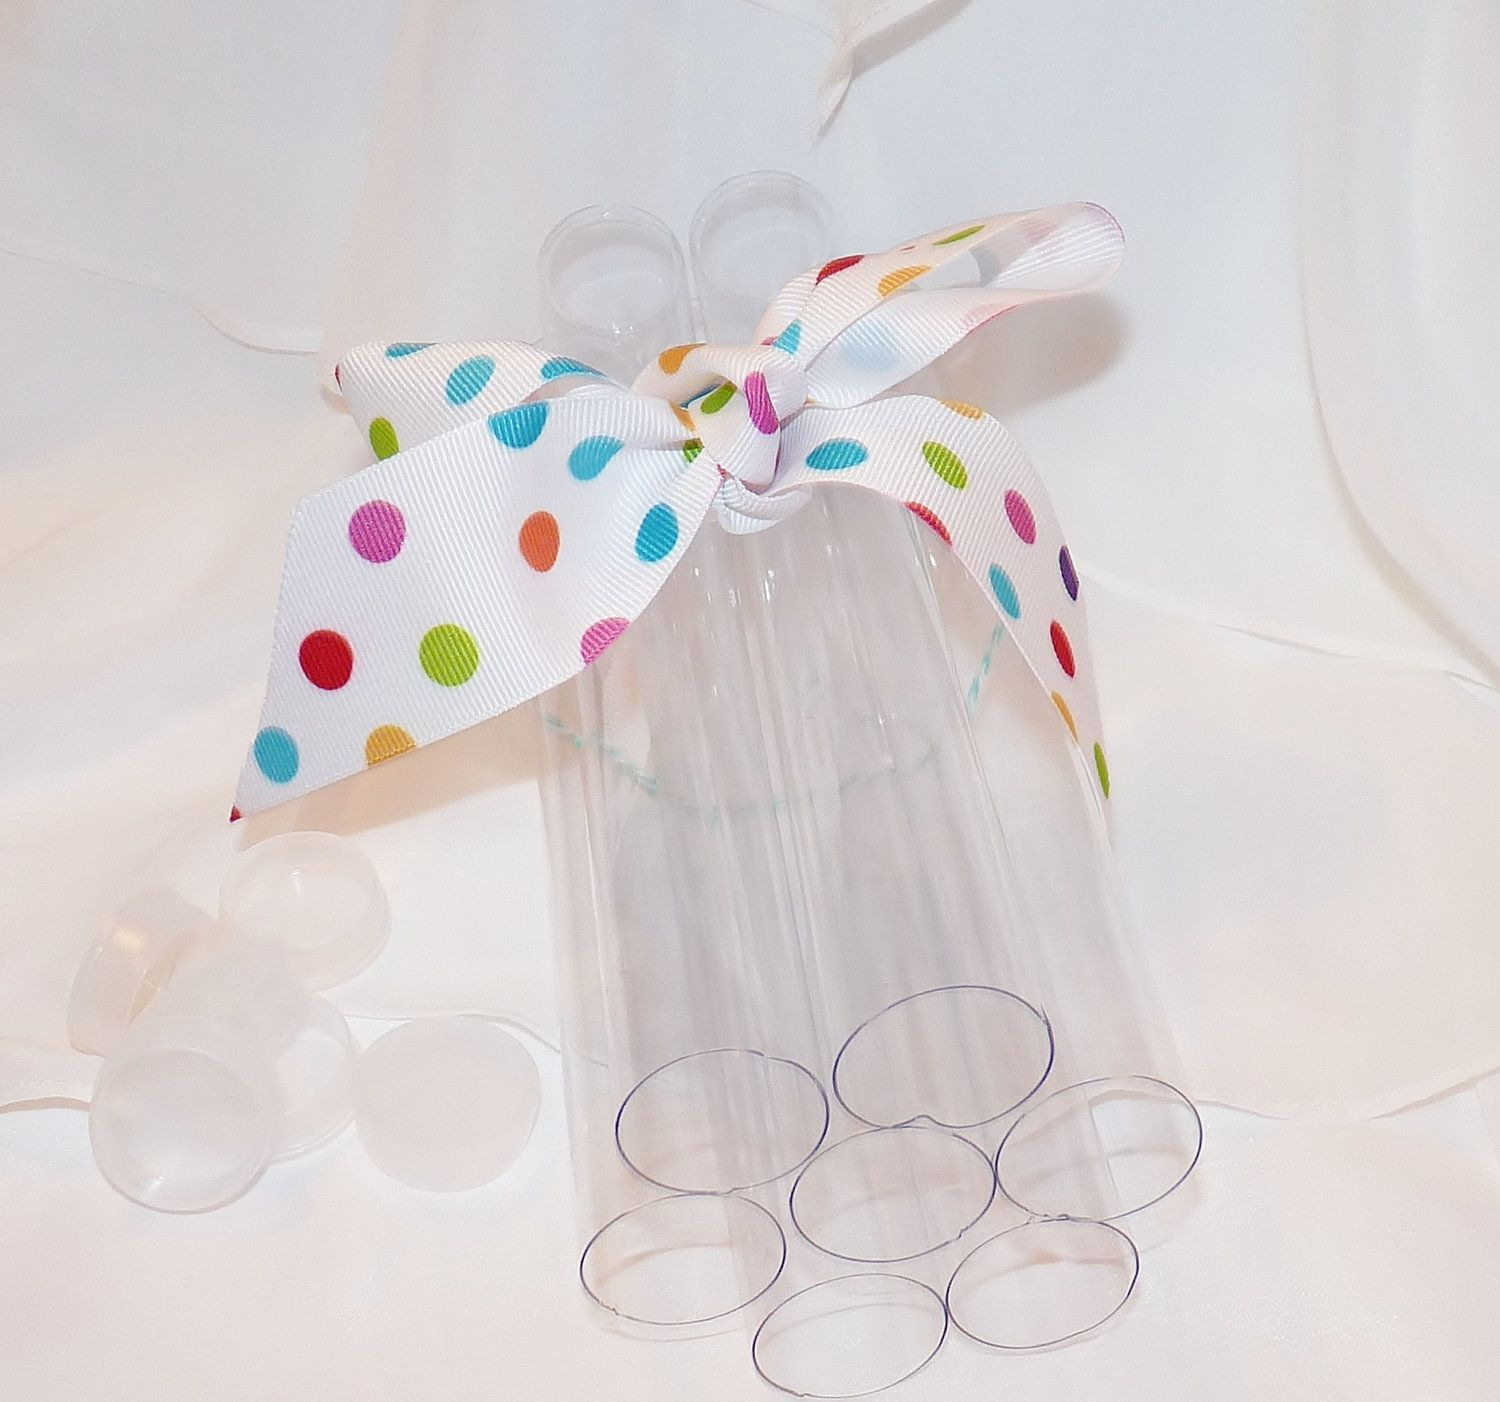 CLEAR PlASTIC TUBES -CaNdY CLEAR PlaStiC FaVor Tubes (set of 10 ...